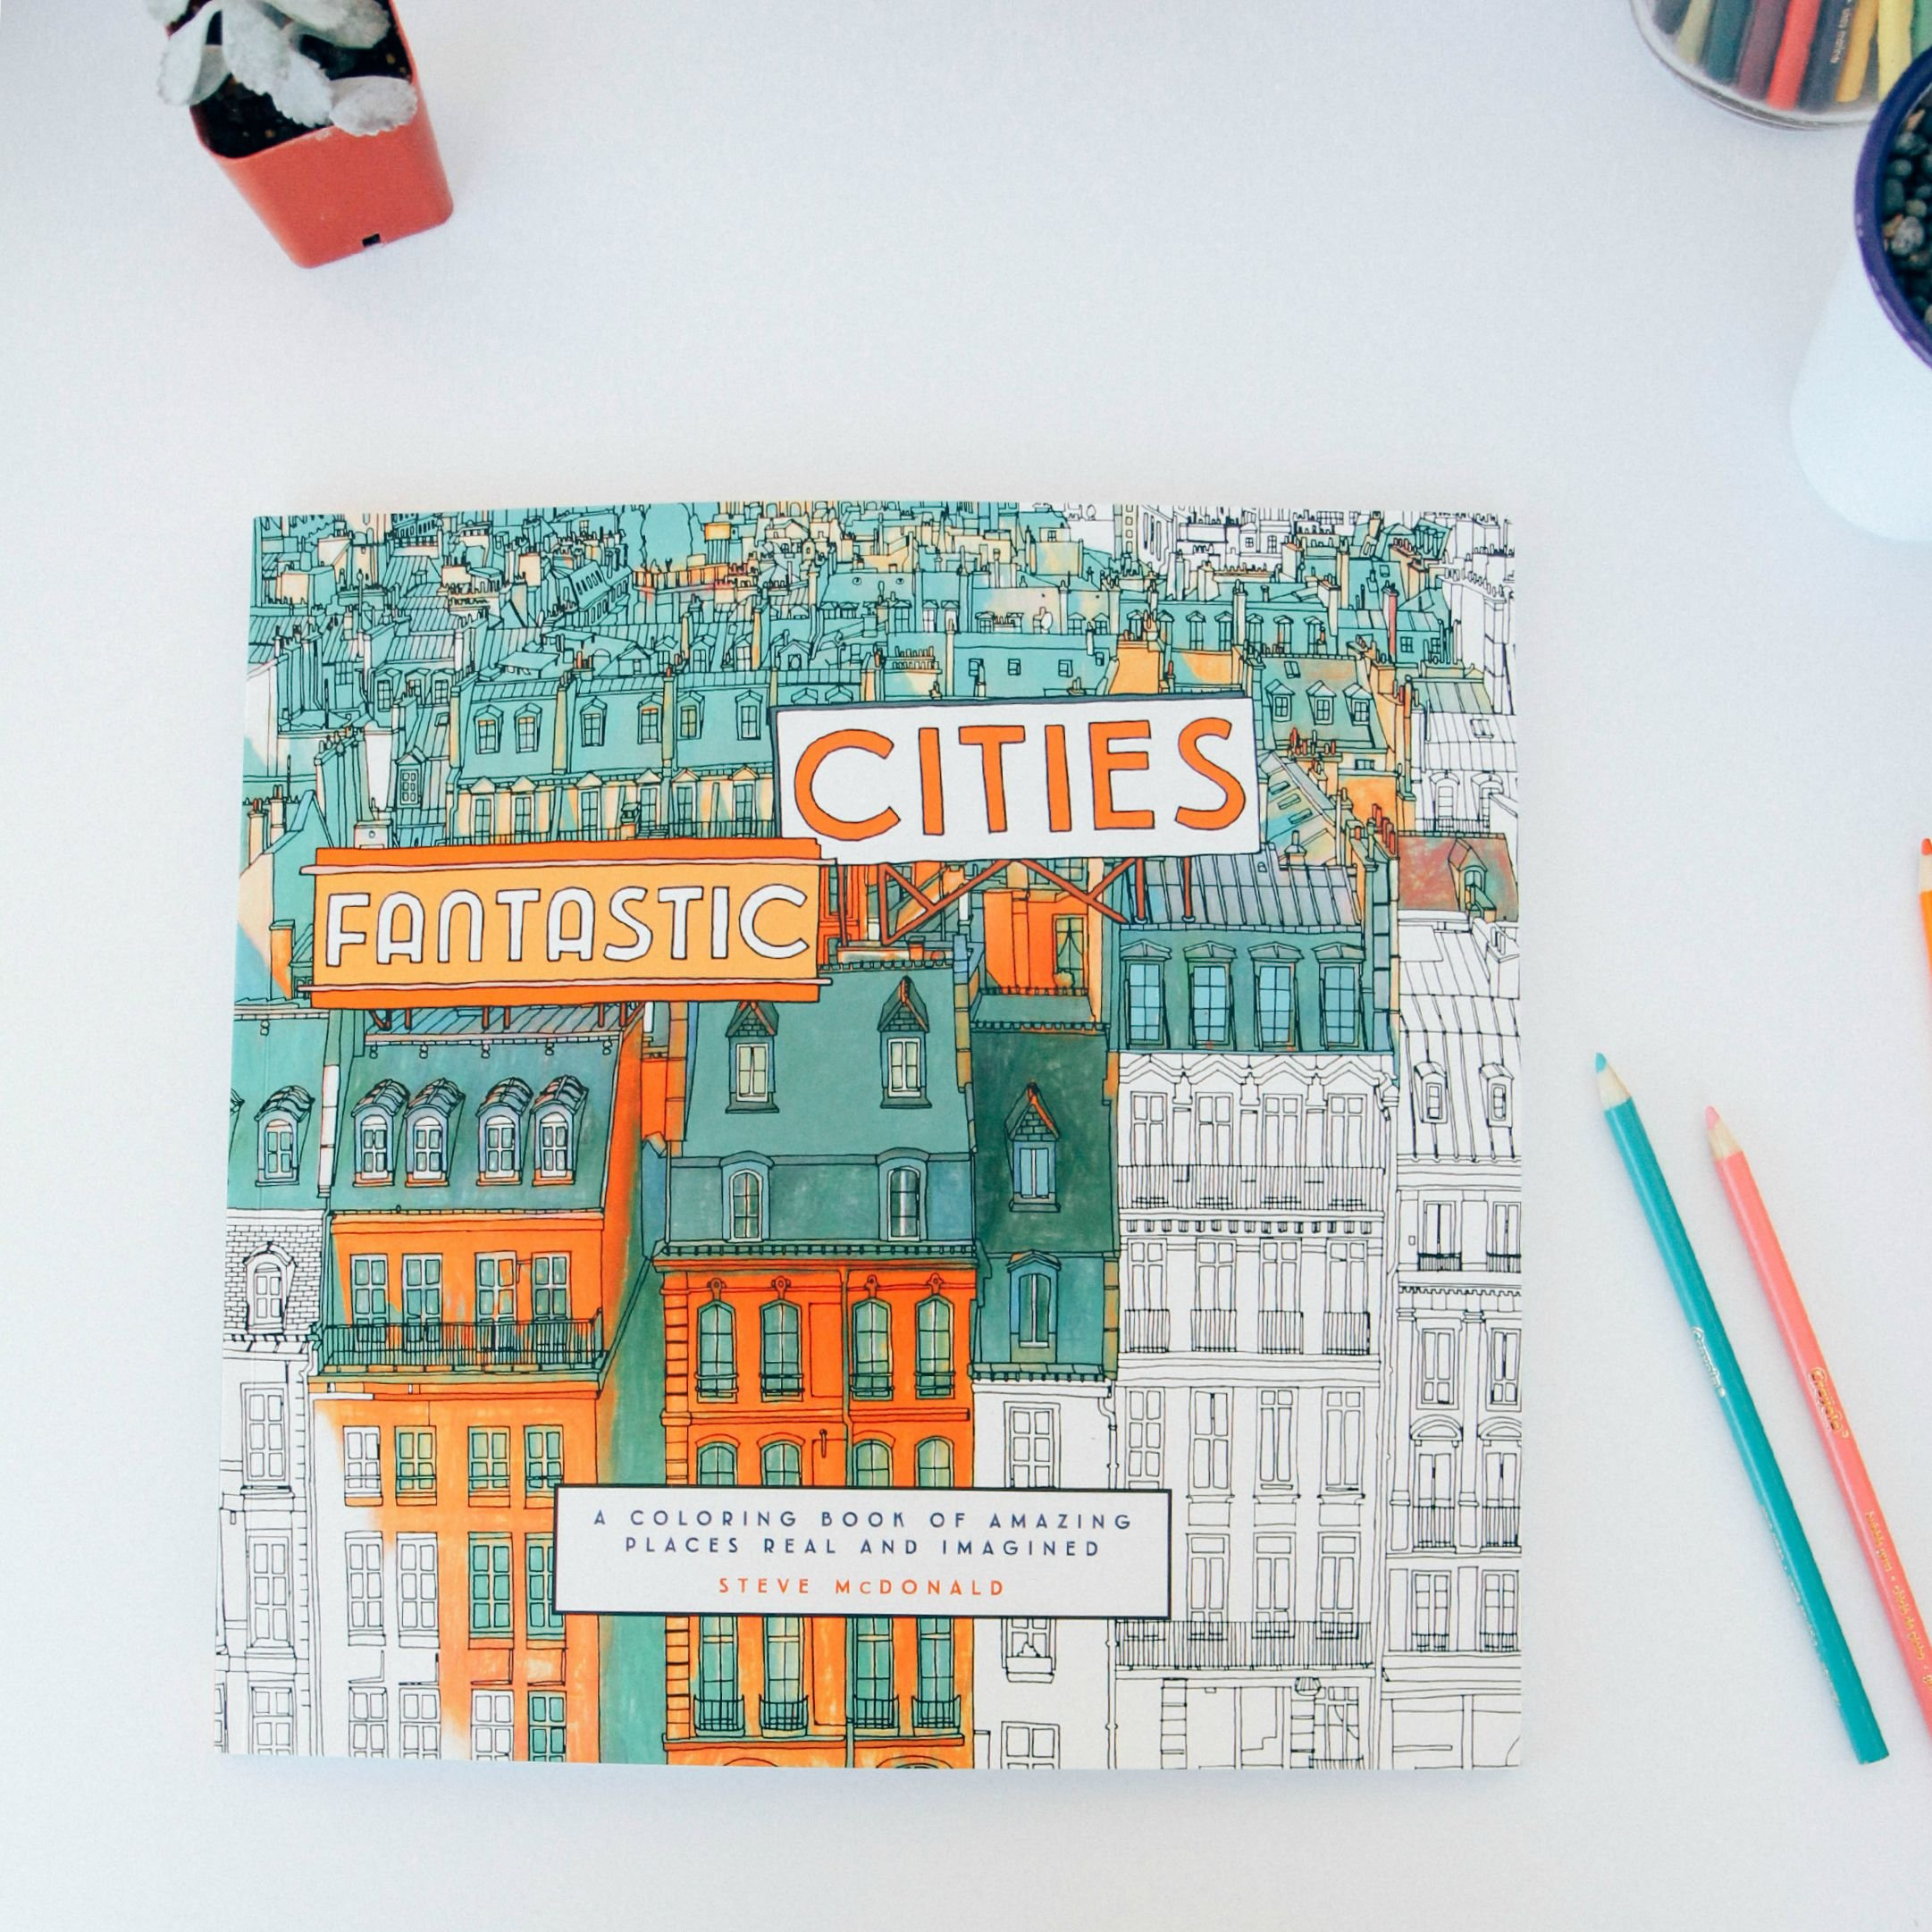 Fantastic Cities A Coloring Book Of Amazing Places Real And Imagined Steve McDonald 0499995260320 Books